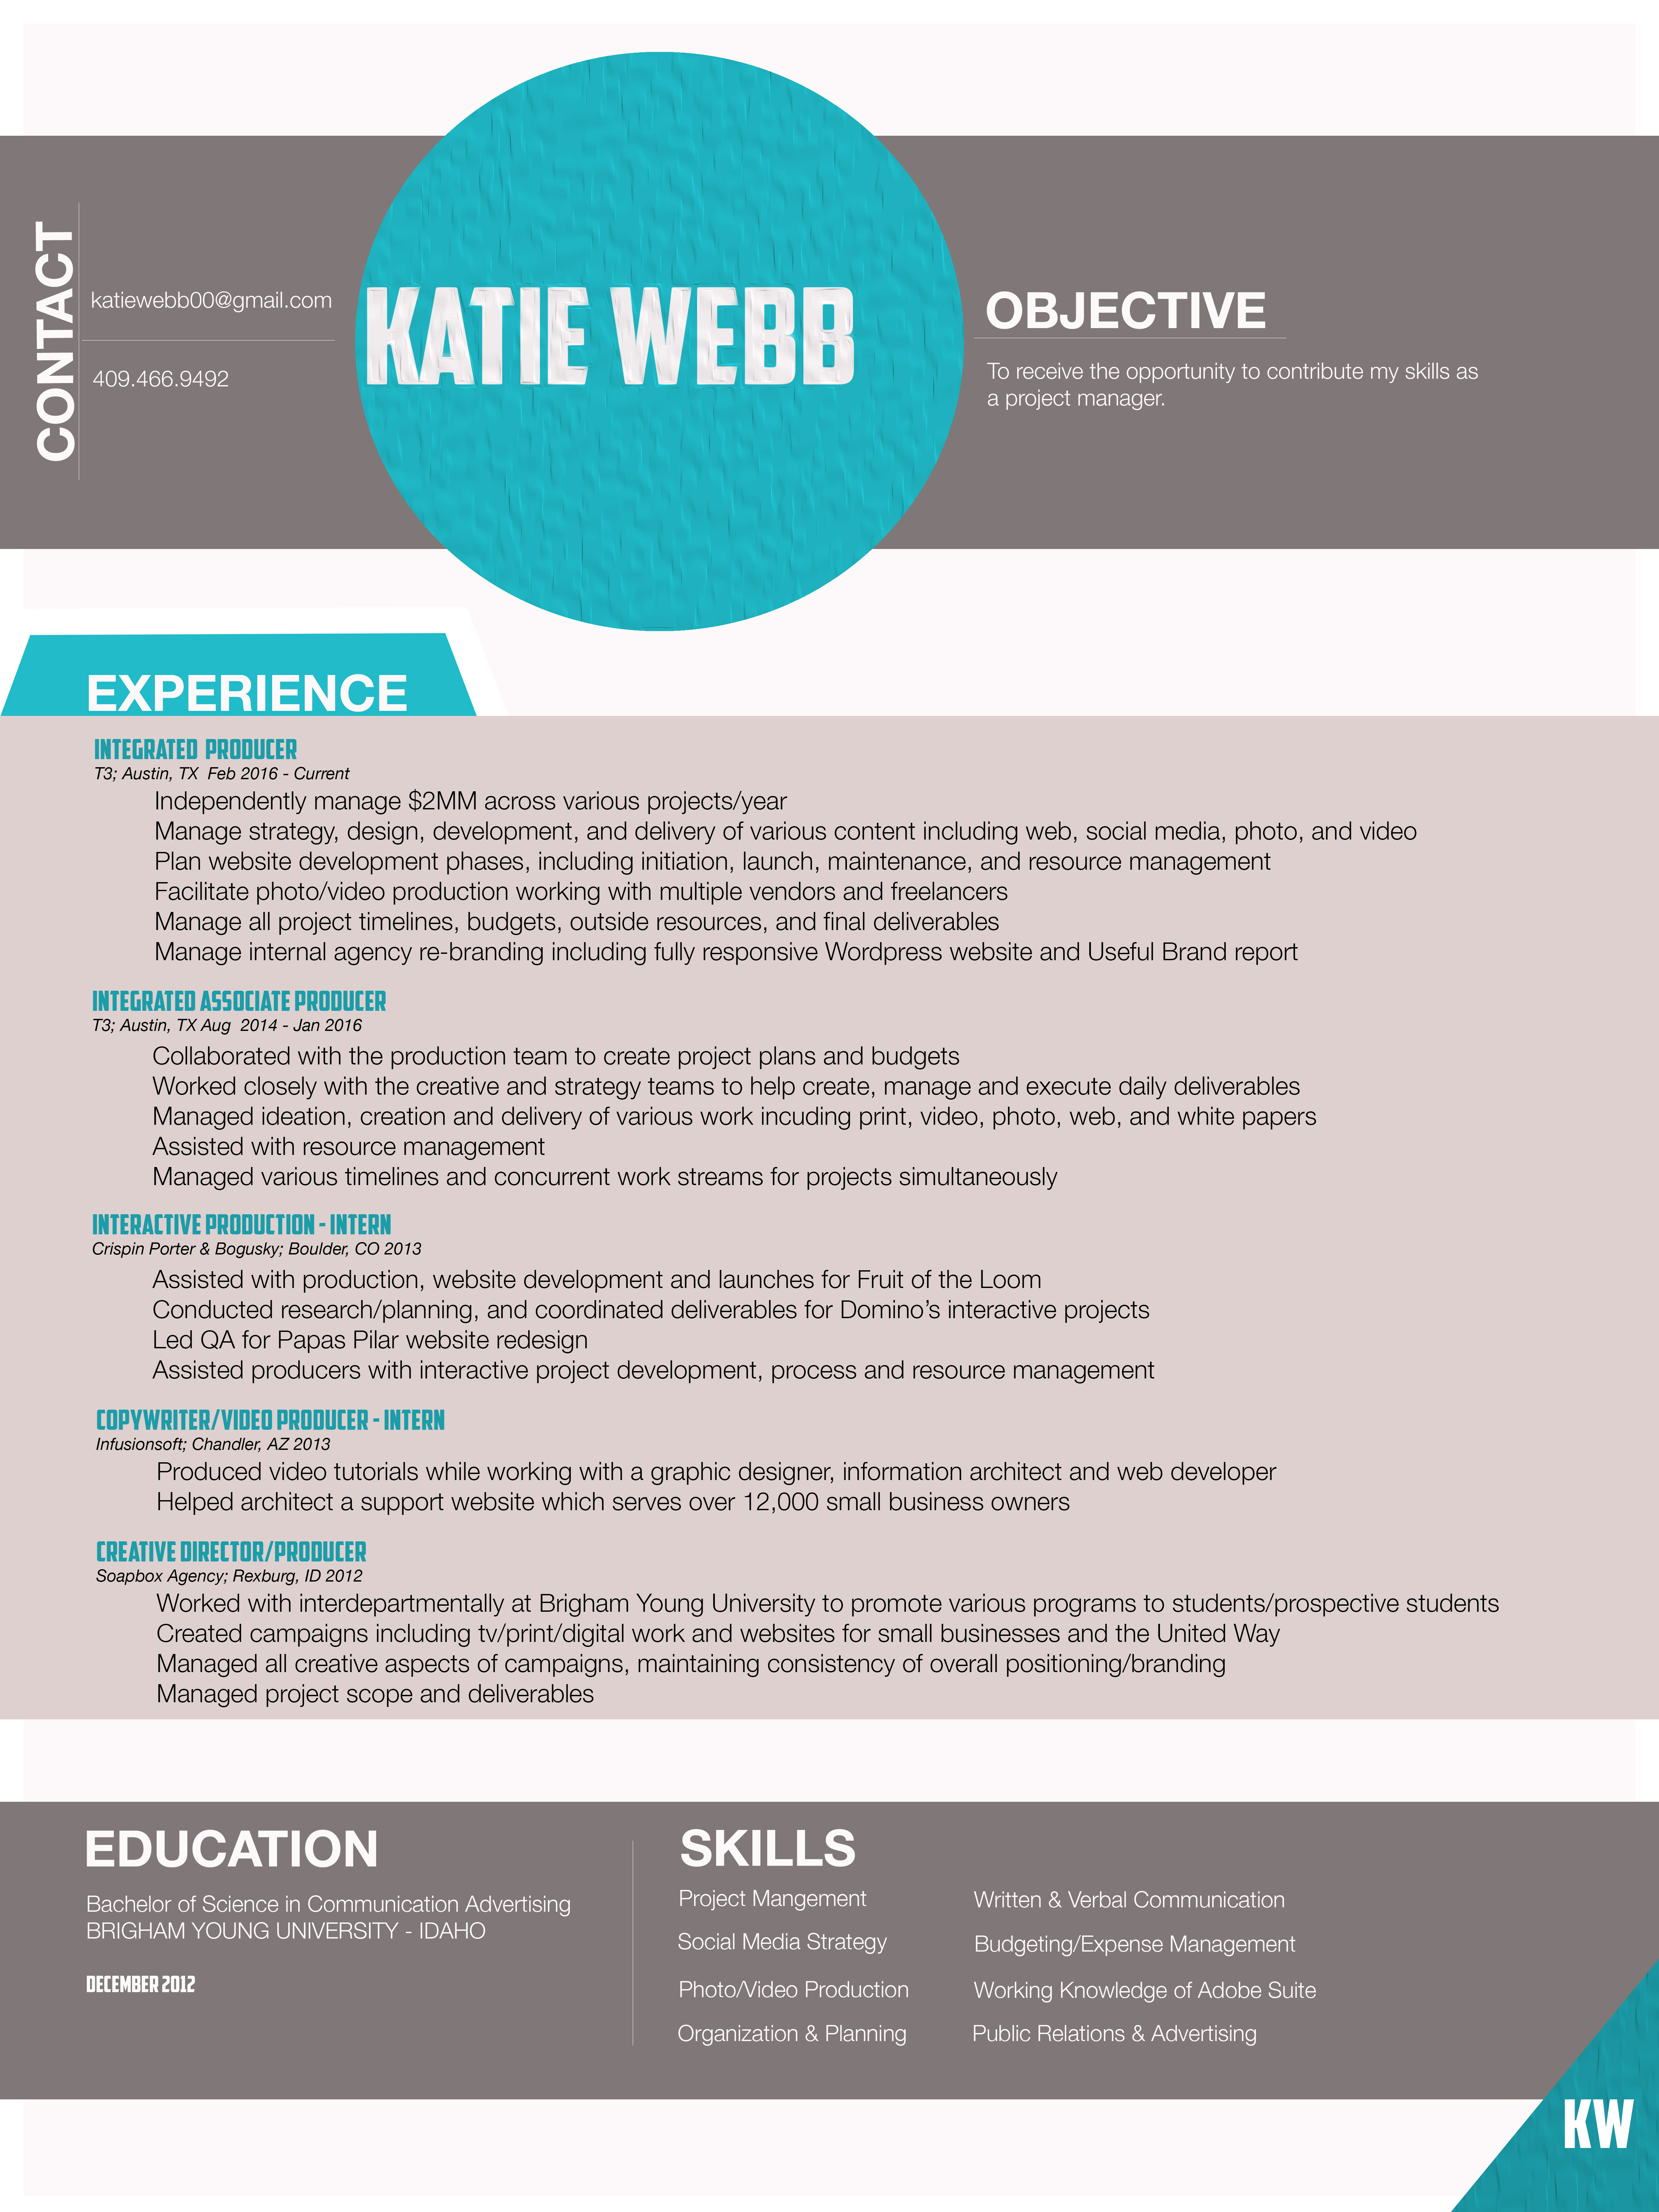 how to write a resume for a 14 year old application for lecturer